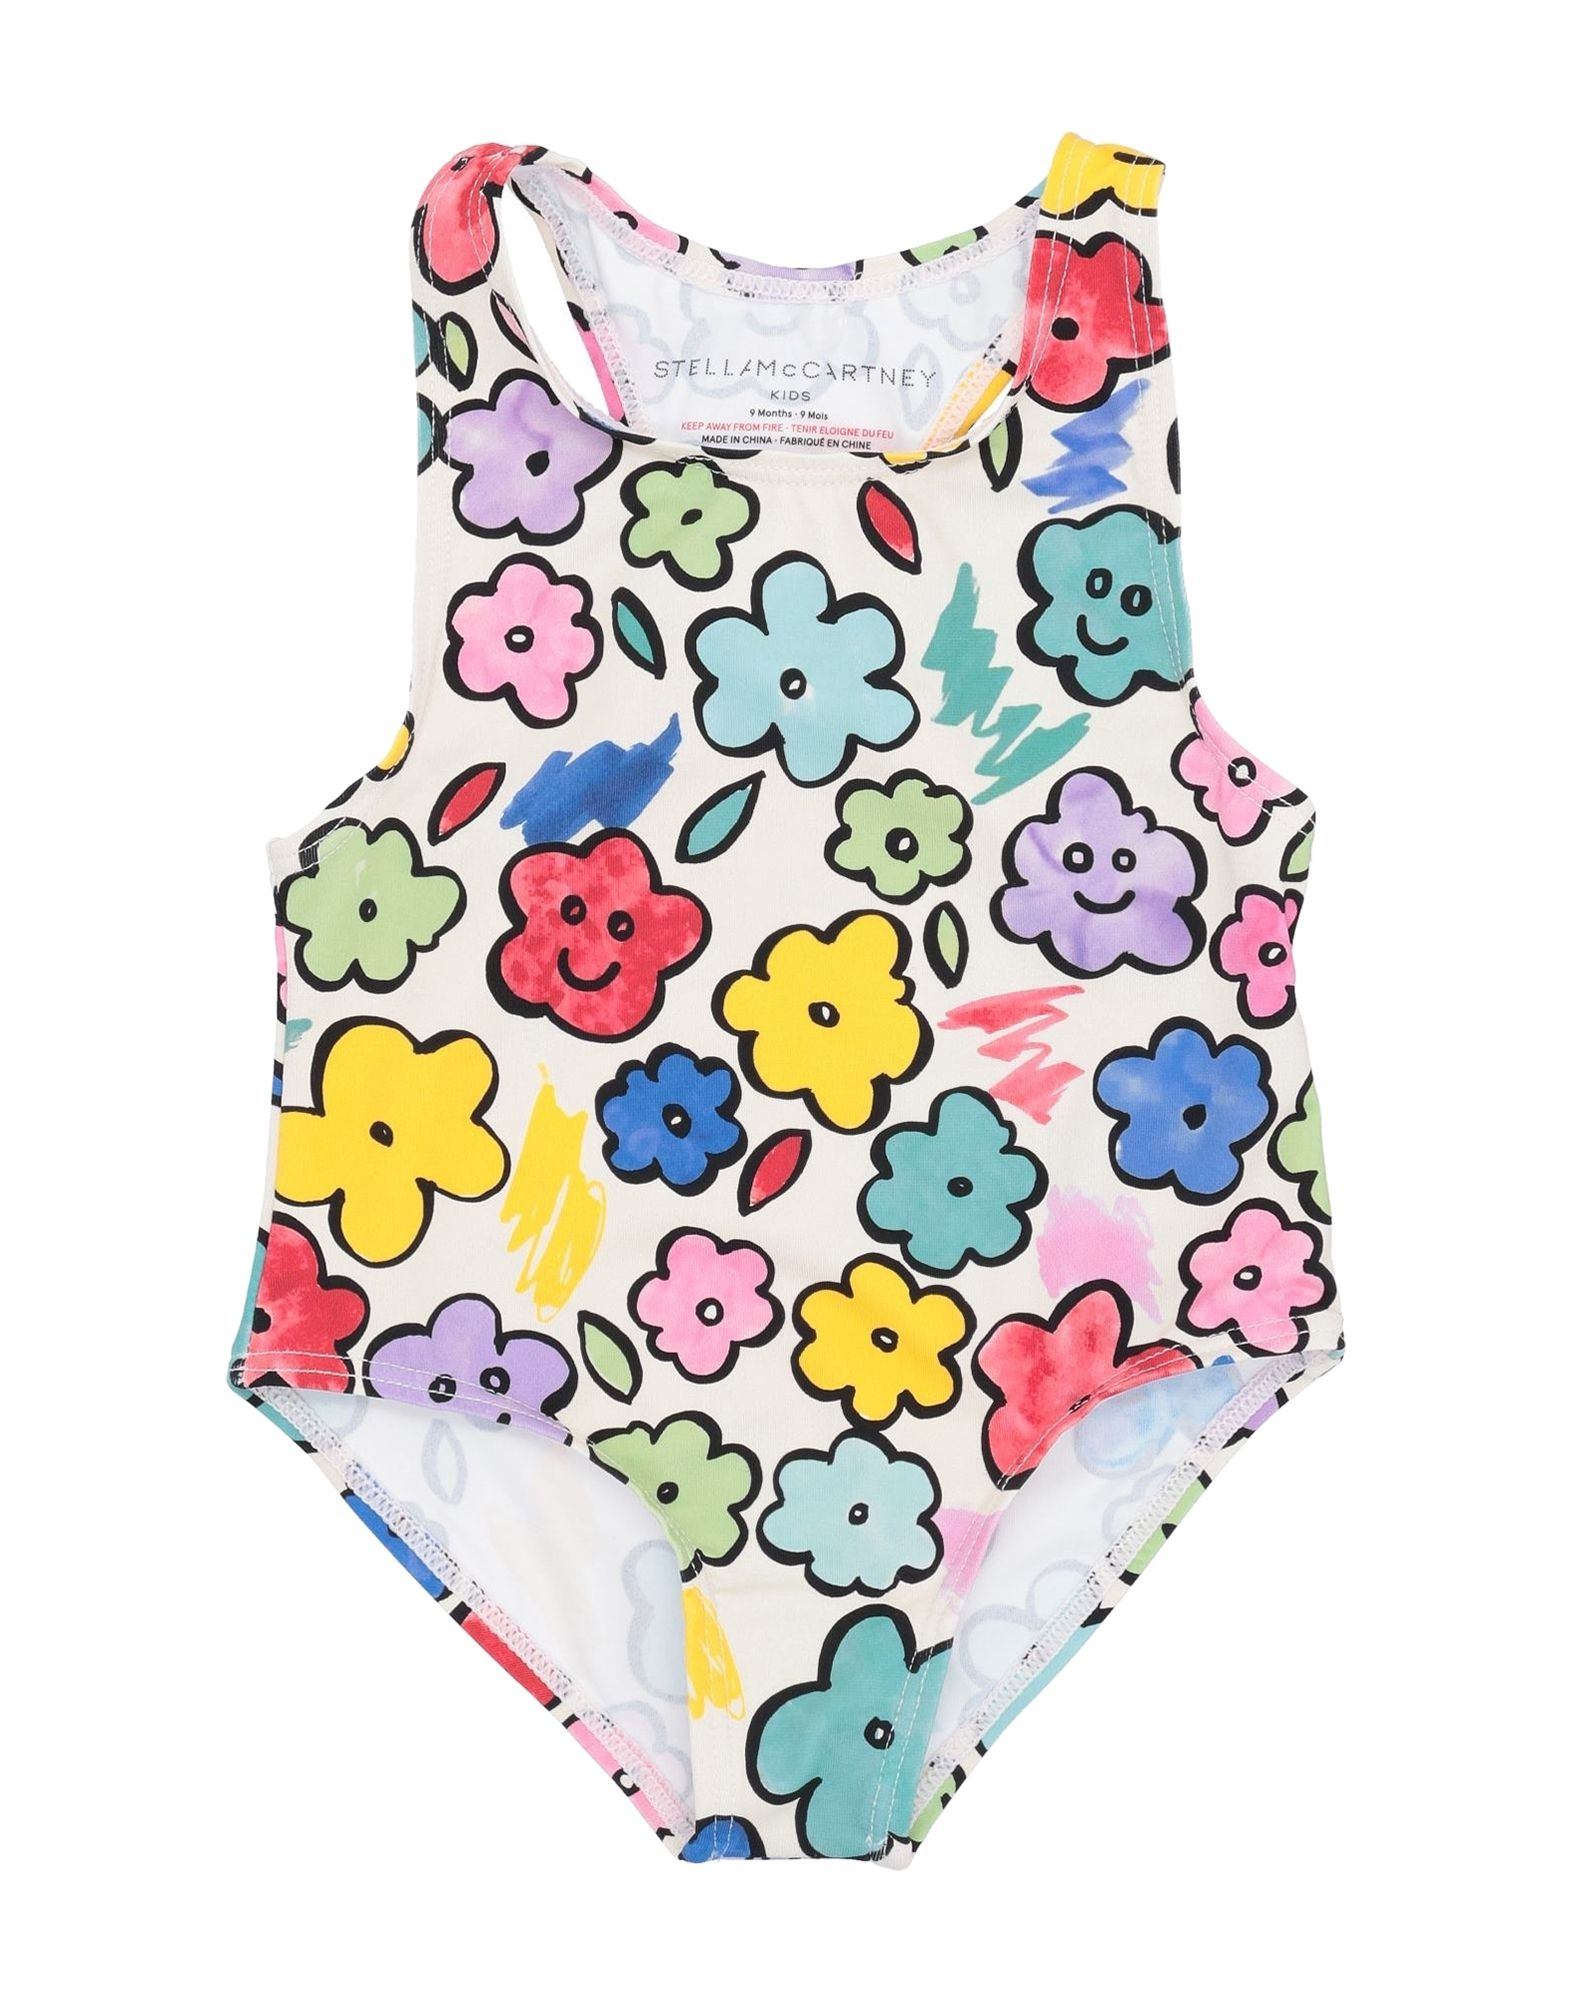 STELLA McCARTNEY KIDS One-piece swimsuits. synthetic jersey, no appliqués, floral design, wash at 30degree c, do not dry clean, do not iron, do not bleach, do not tumble dry, stretch. 78% Polyamide, 22% Elastane, Recycled nylon